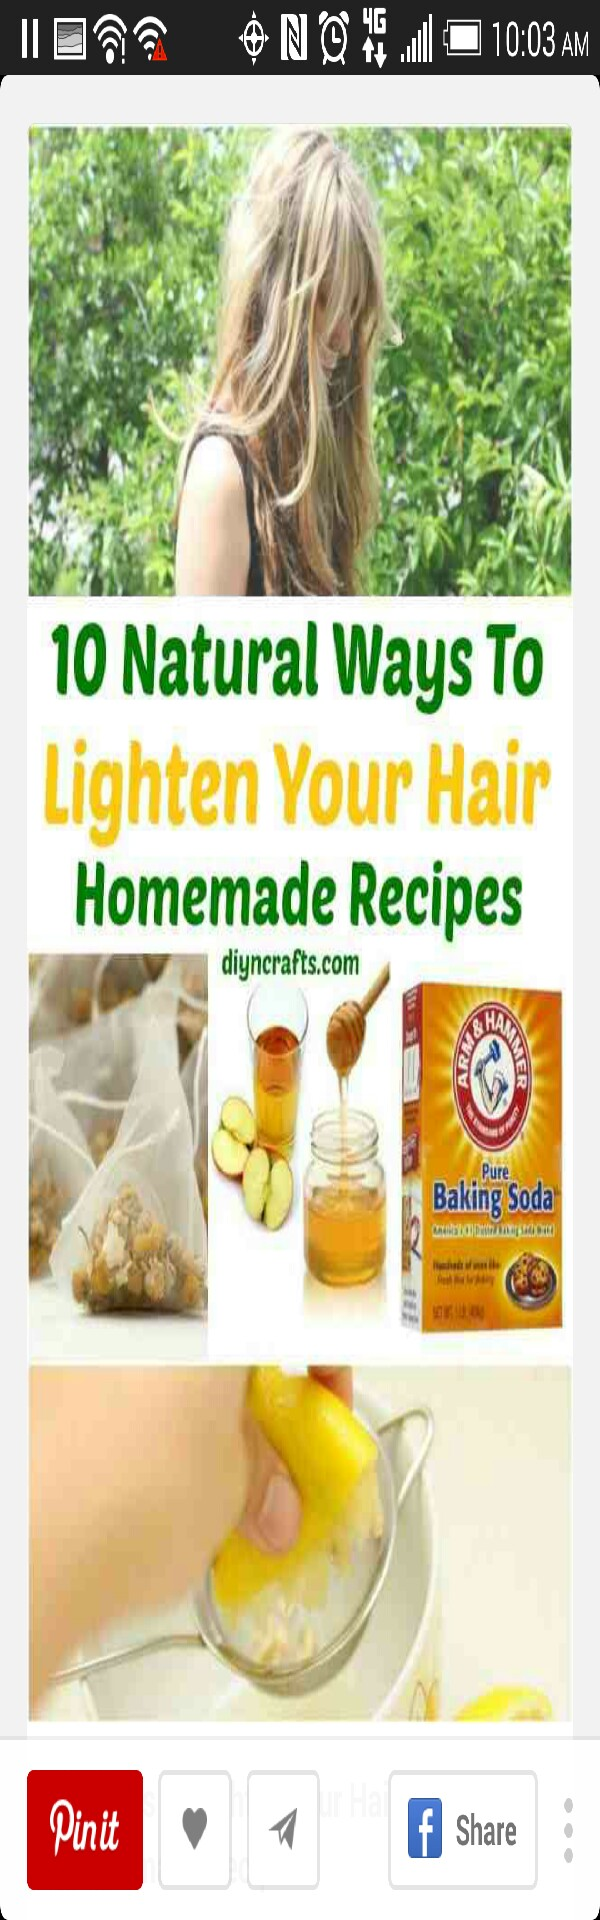 ✨10 natural ways to lighten your hair✨